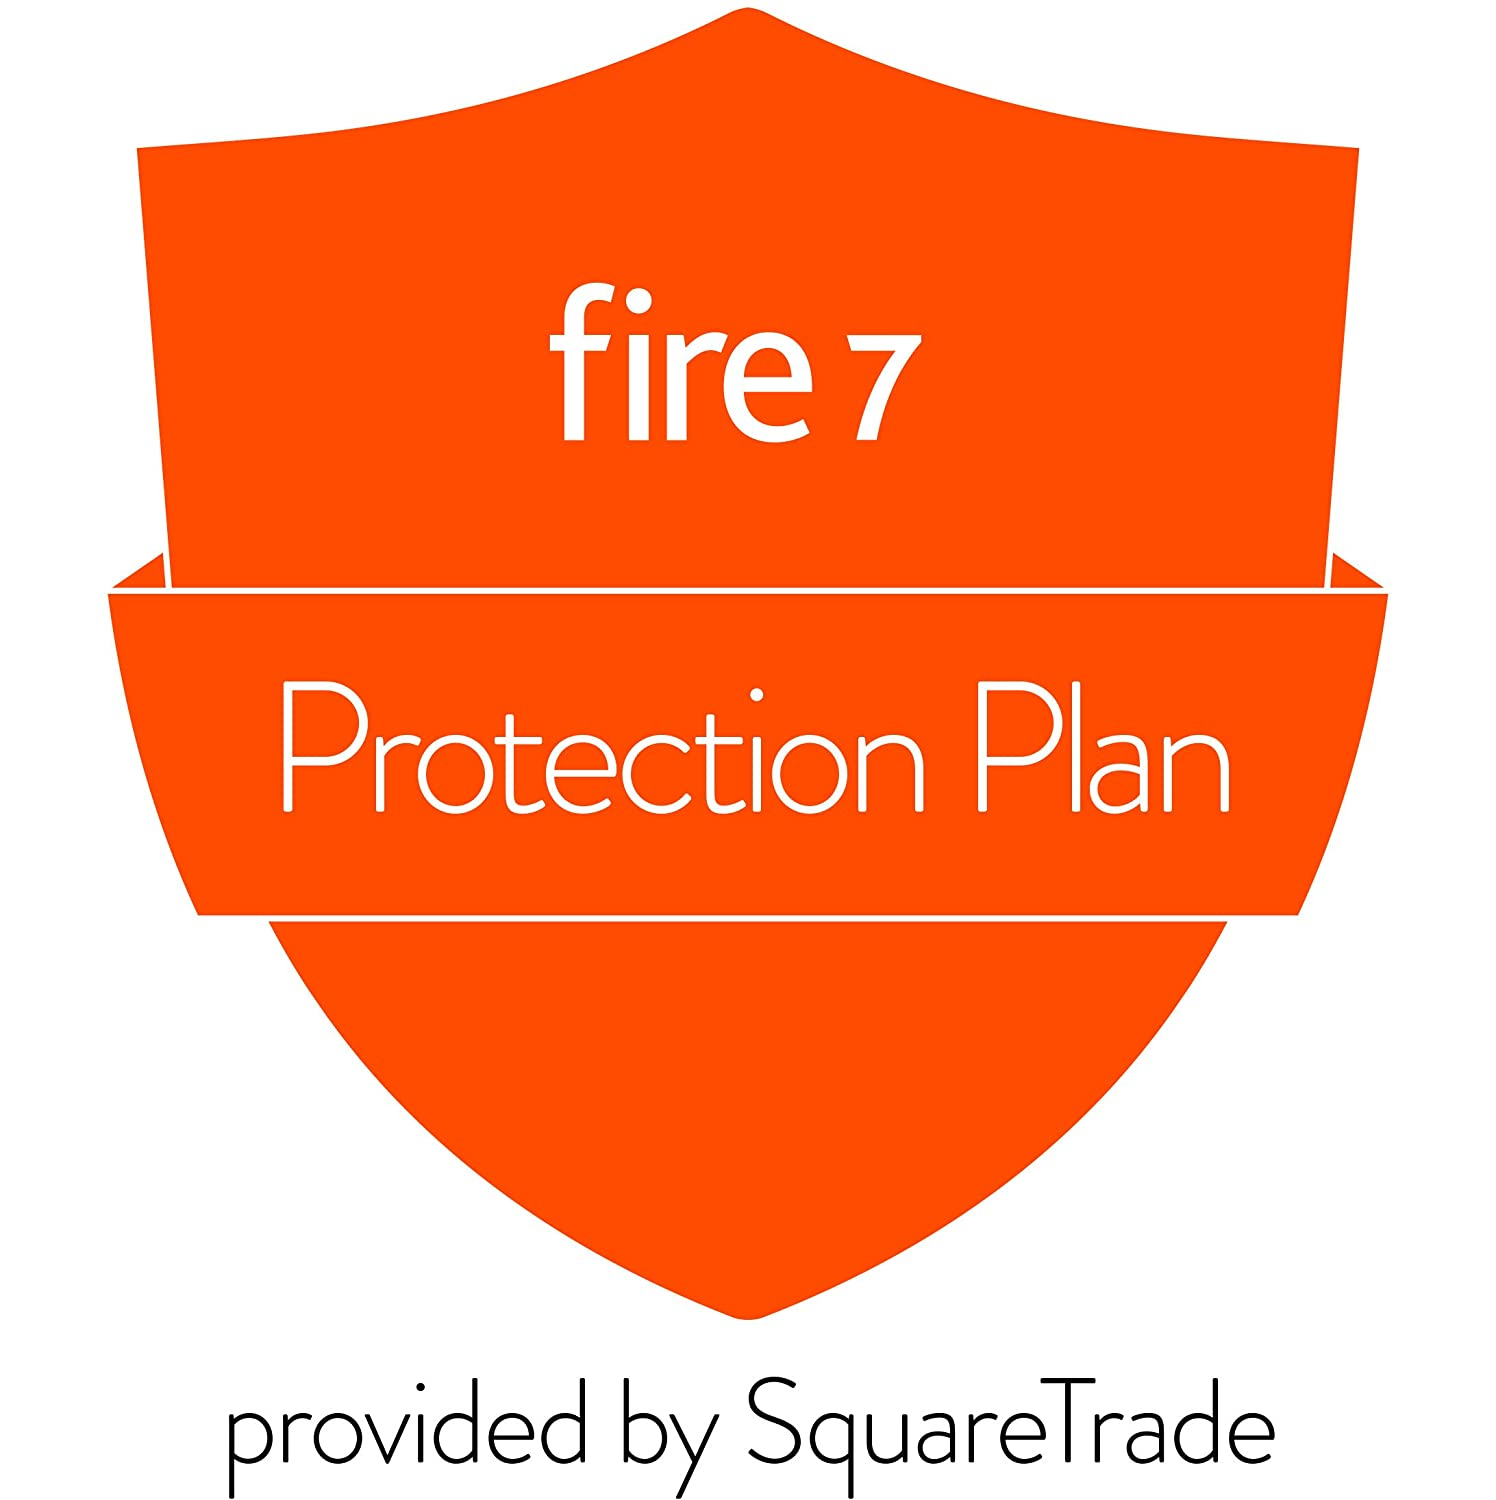 3-Year Protection Plan plus Accident Protection for Fire 7 Tablet (2017 release, delivered via e-mail)